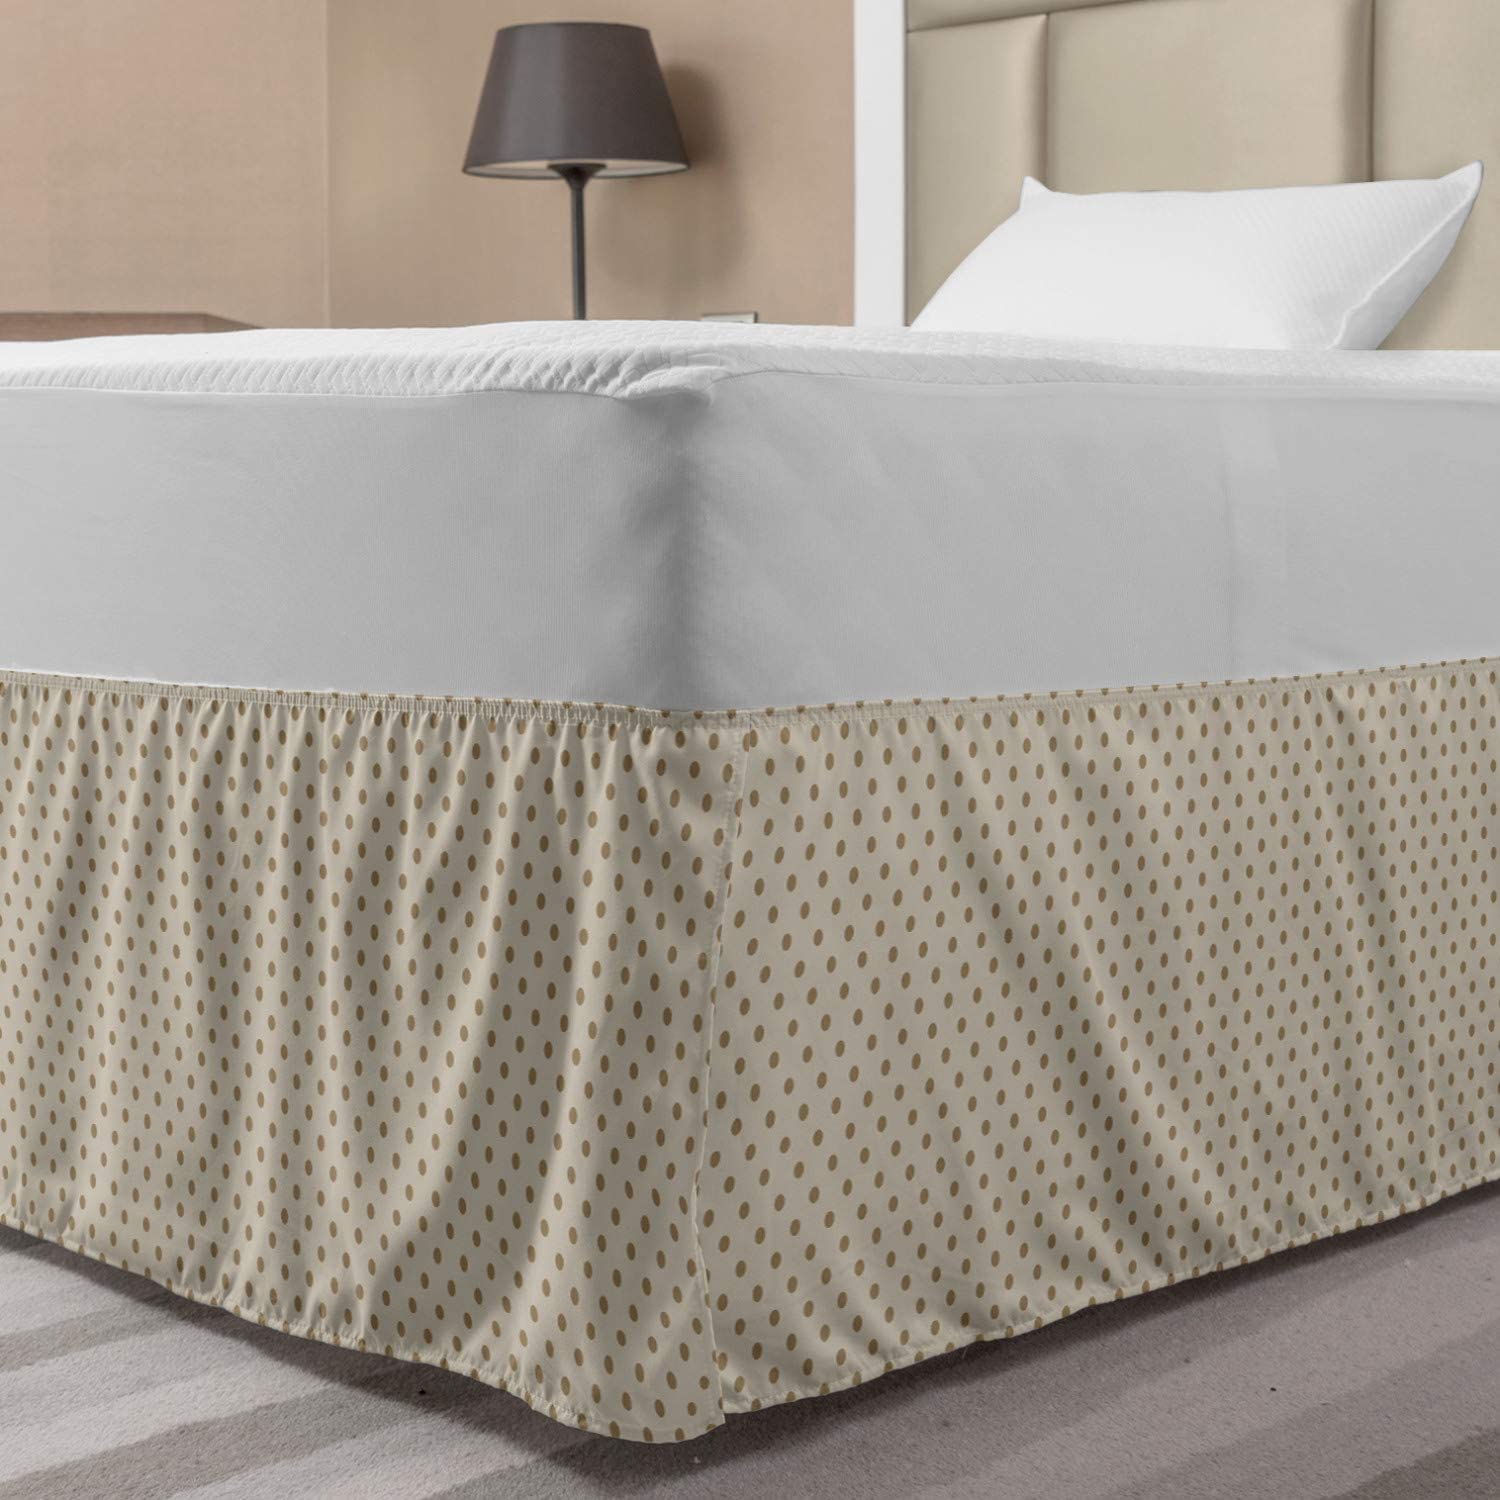 Ambesonne Beige Elastic Bed Skirt, Traditional Polka Dots Classical Motifs Abstract Composition Ornamental Retro Print, Wrap Around Fabric Bedskirt Dust Ruffle for Bedroom, Twin/Twin XL, Beige Tan